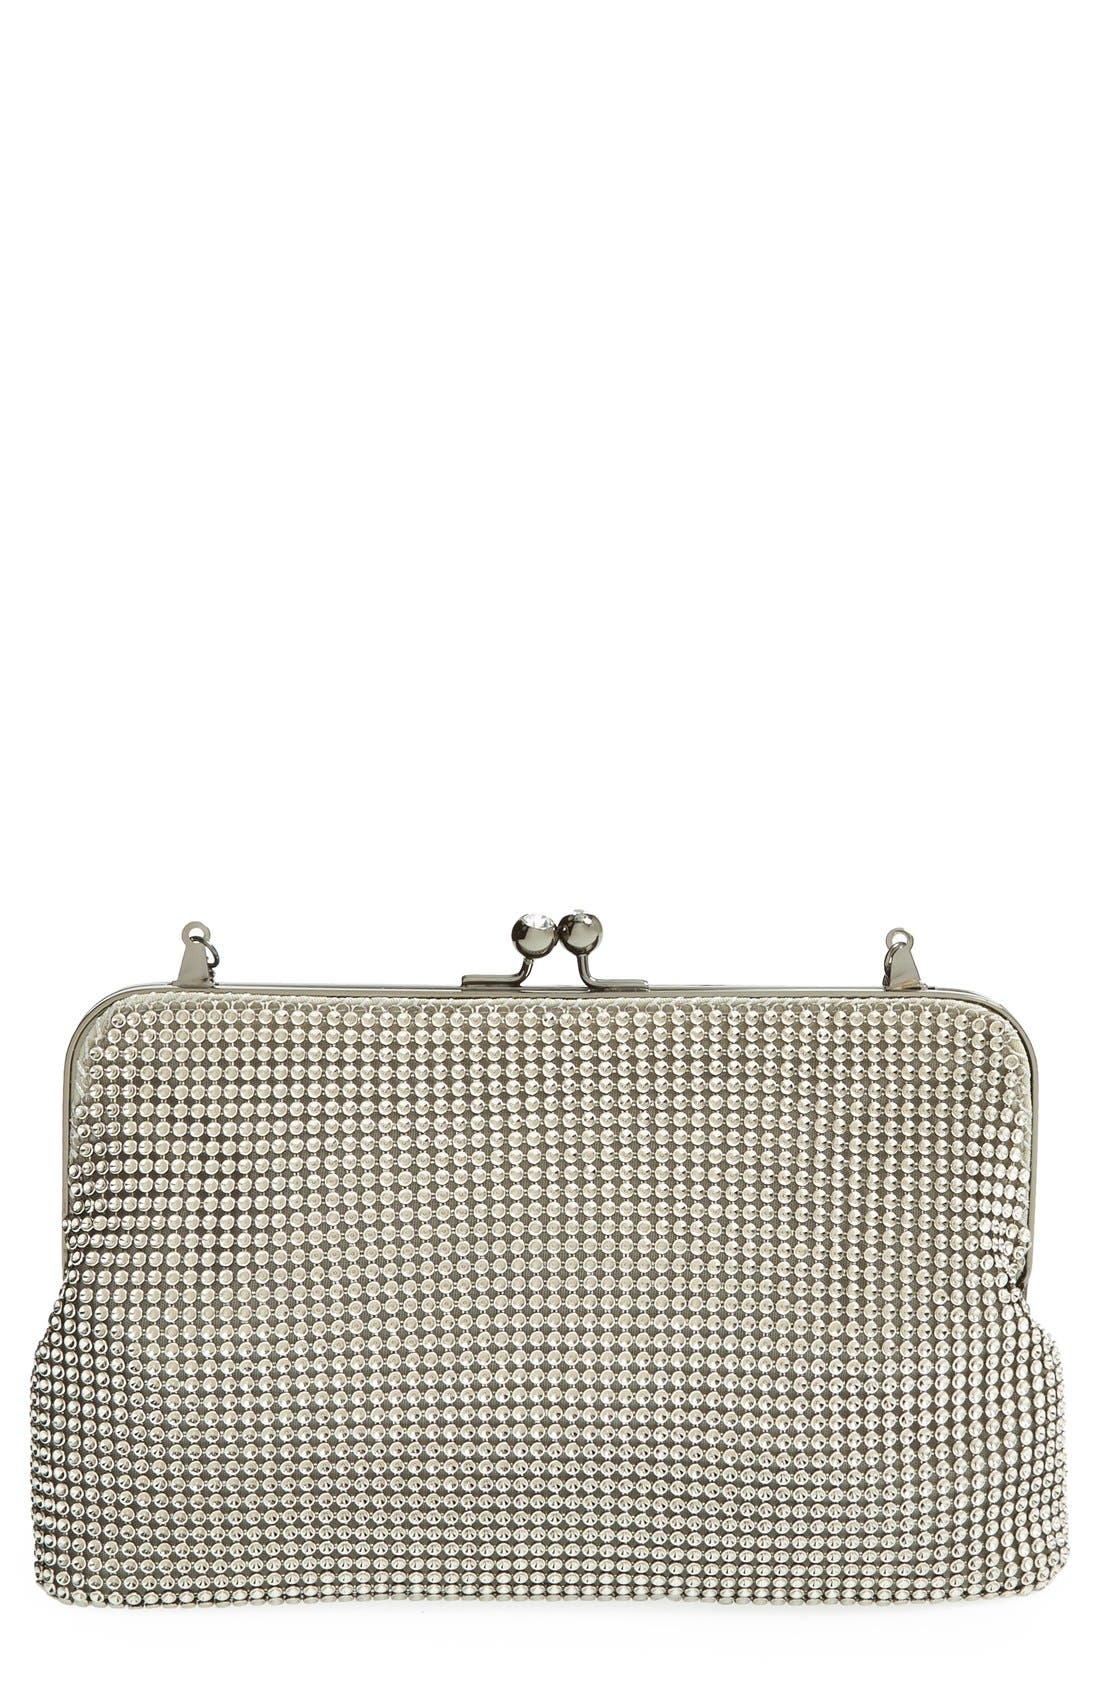 Alternate Image 1 Selected - Whiting & Davis Mesh Clutch